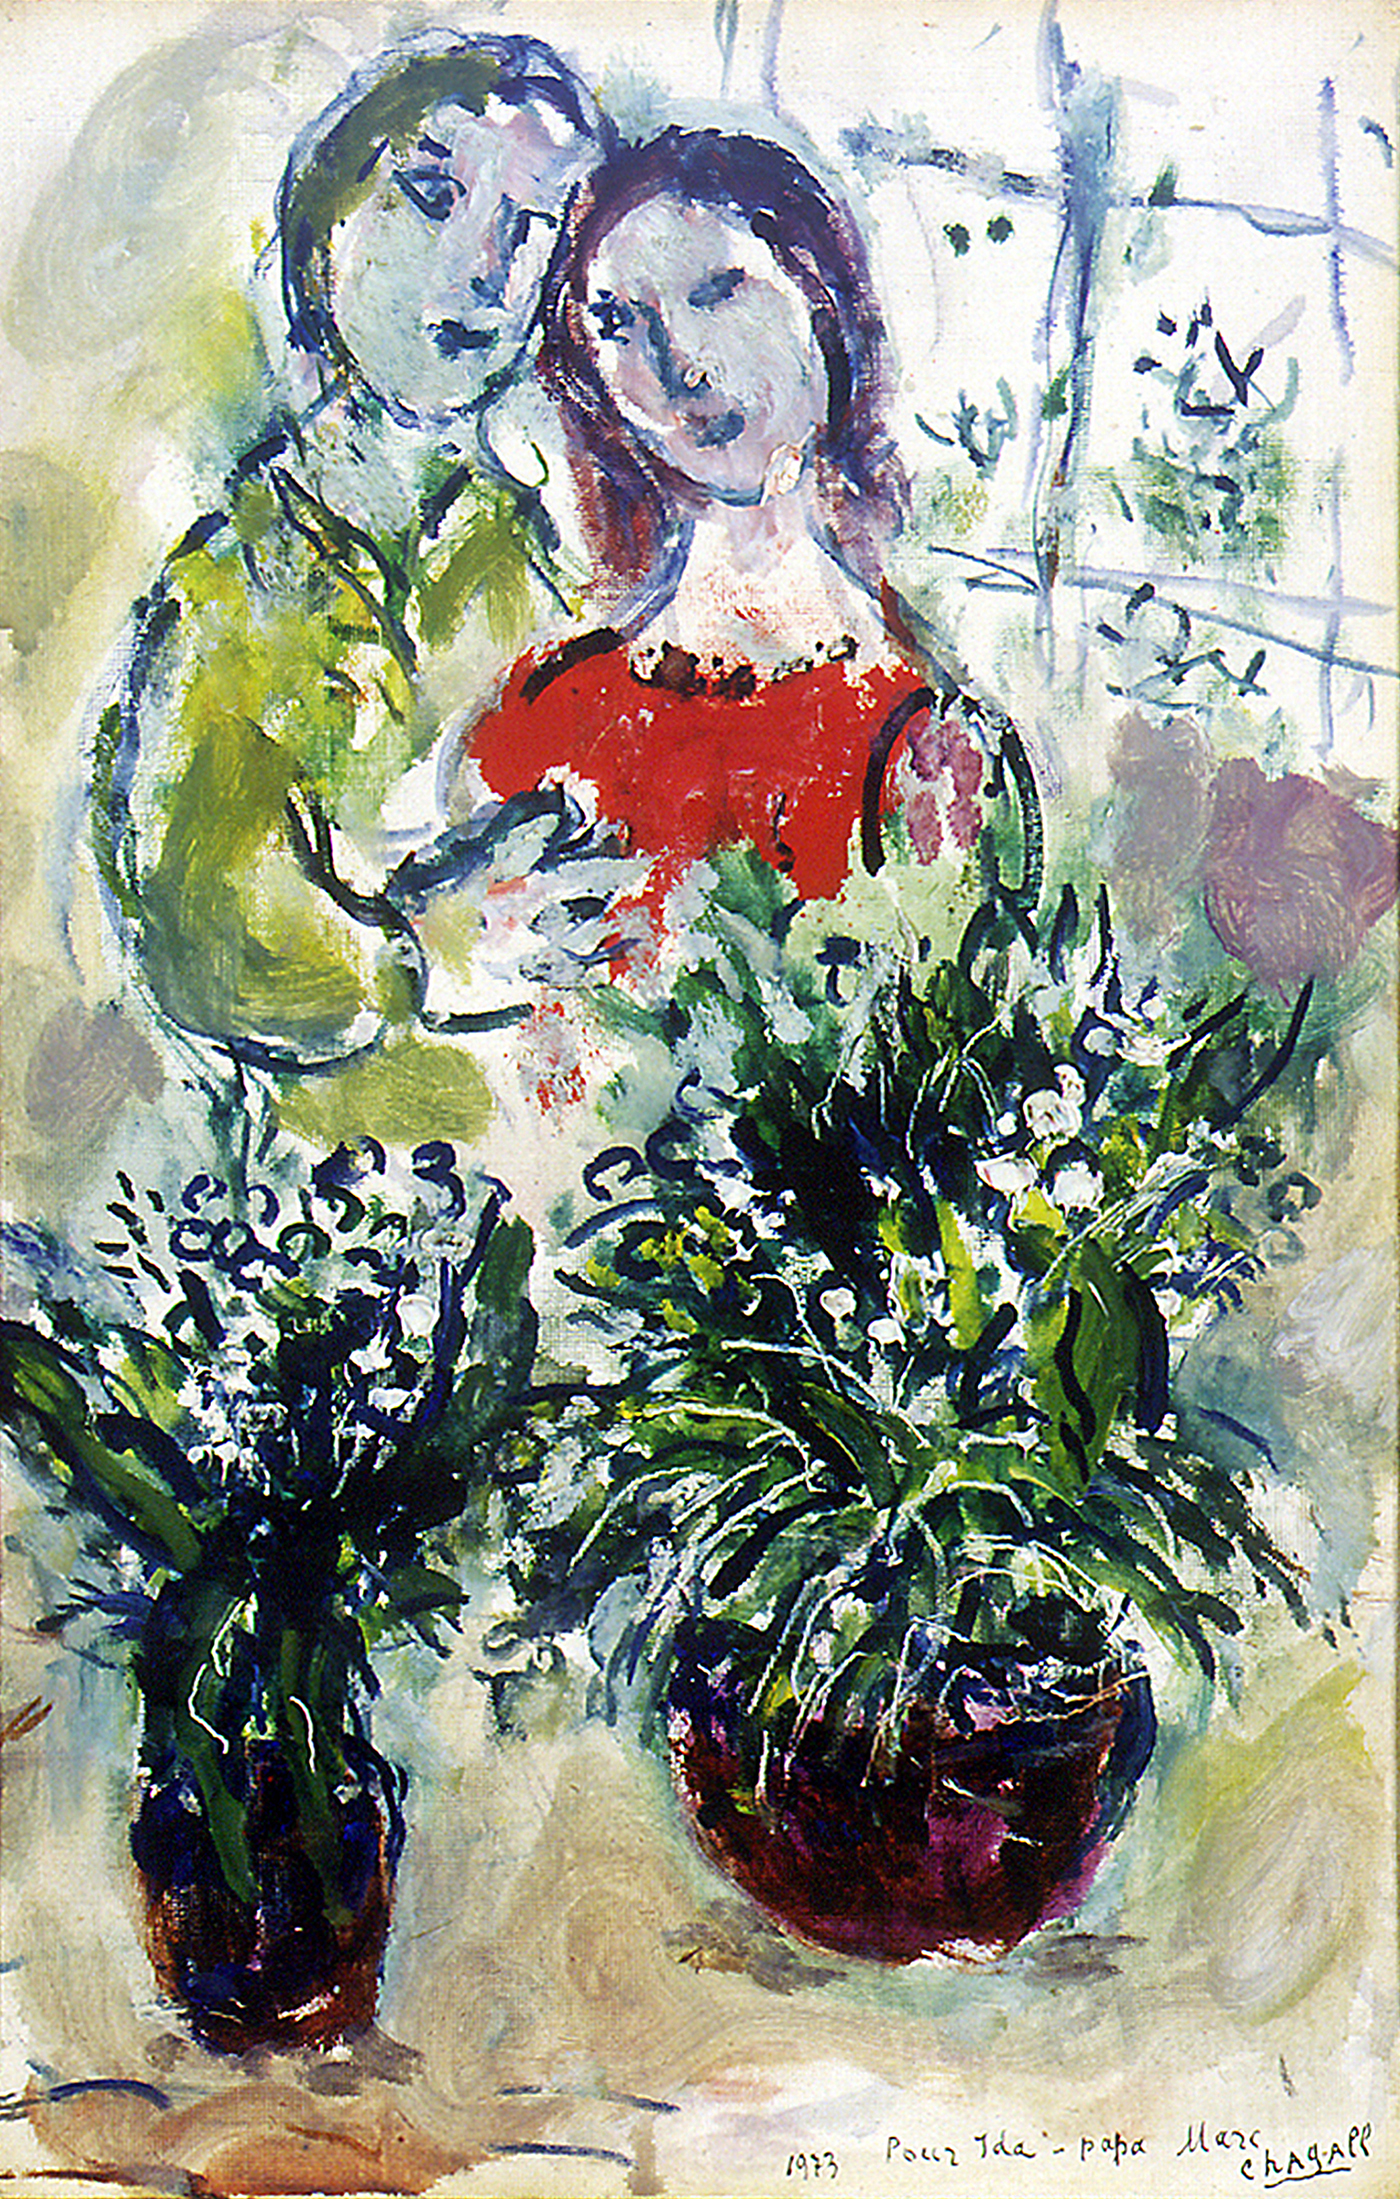 A Botanical Garden Blooms with Chagall Artes & contextos couple with lilies